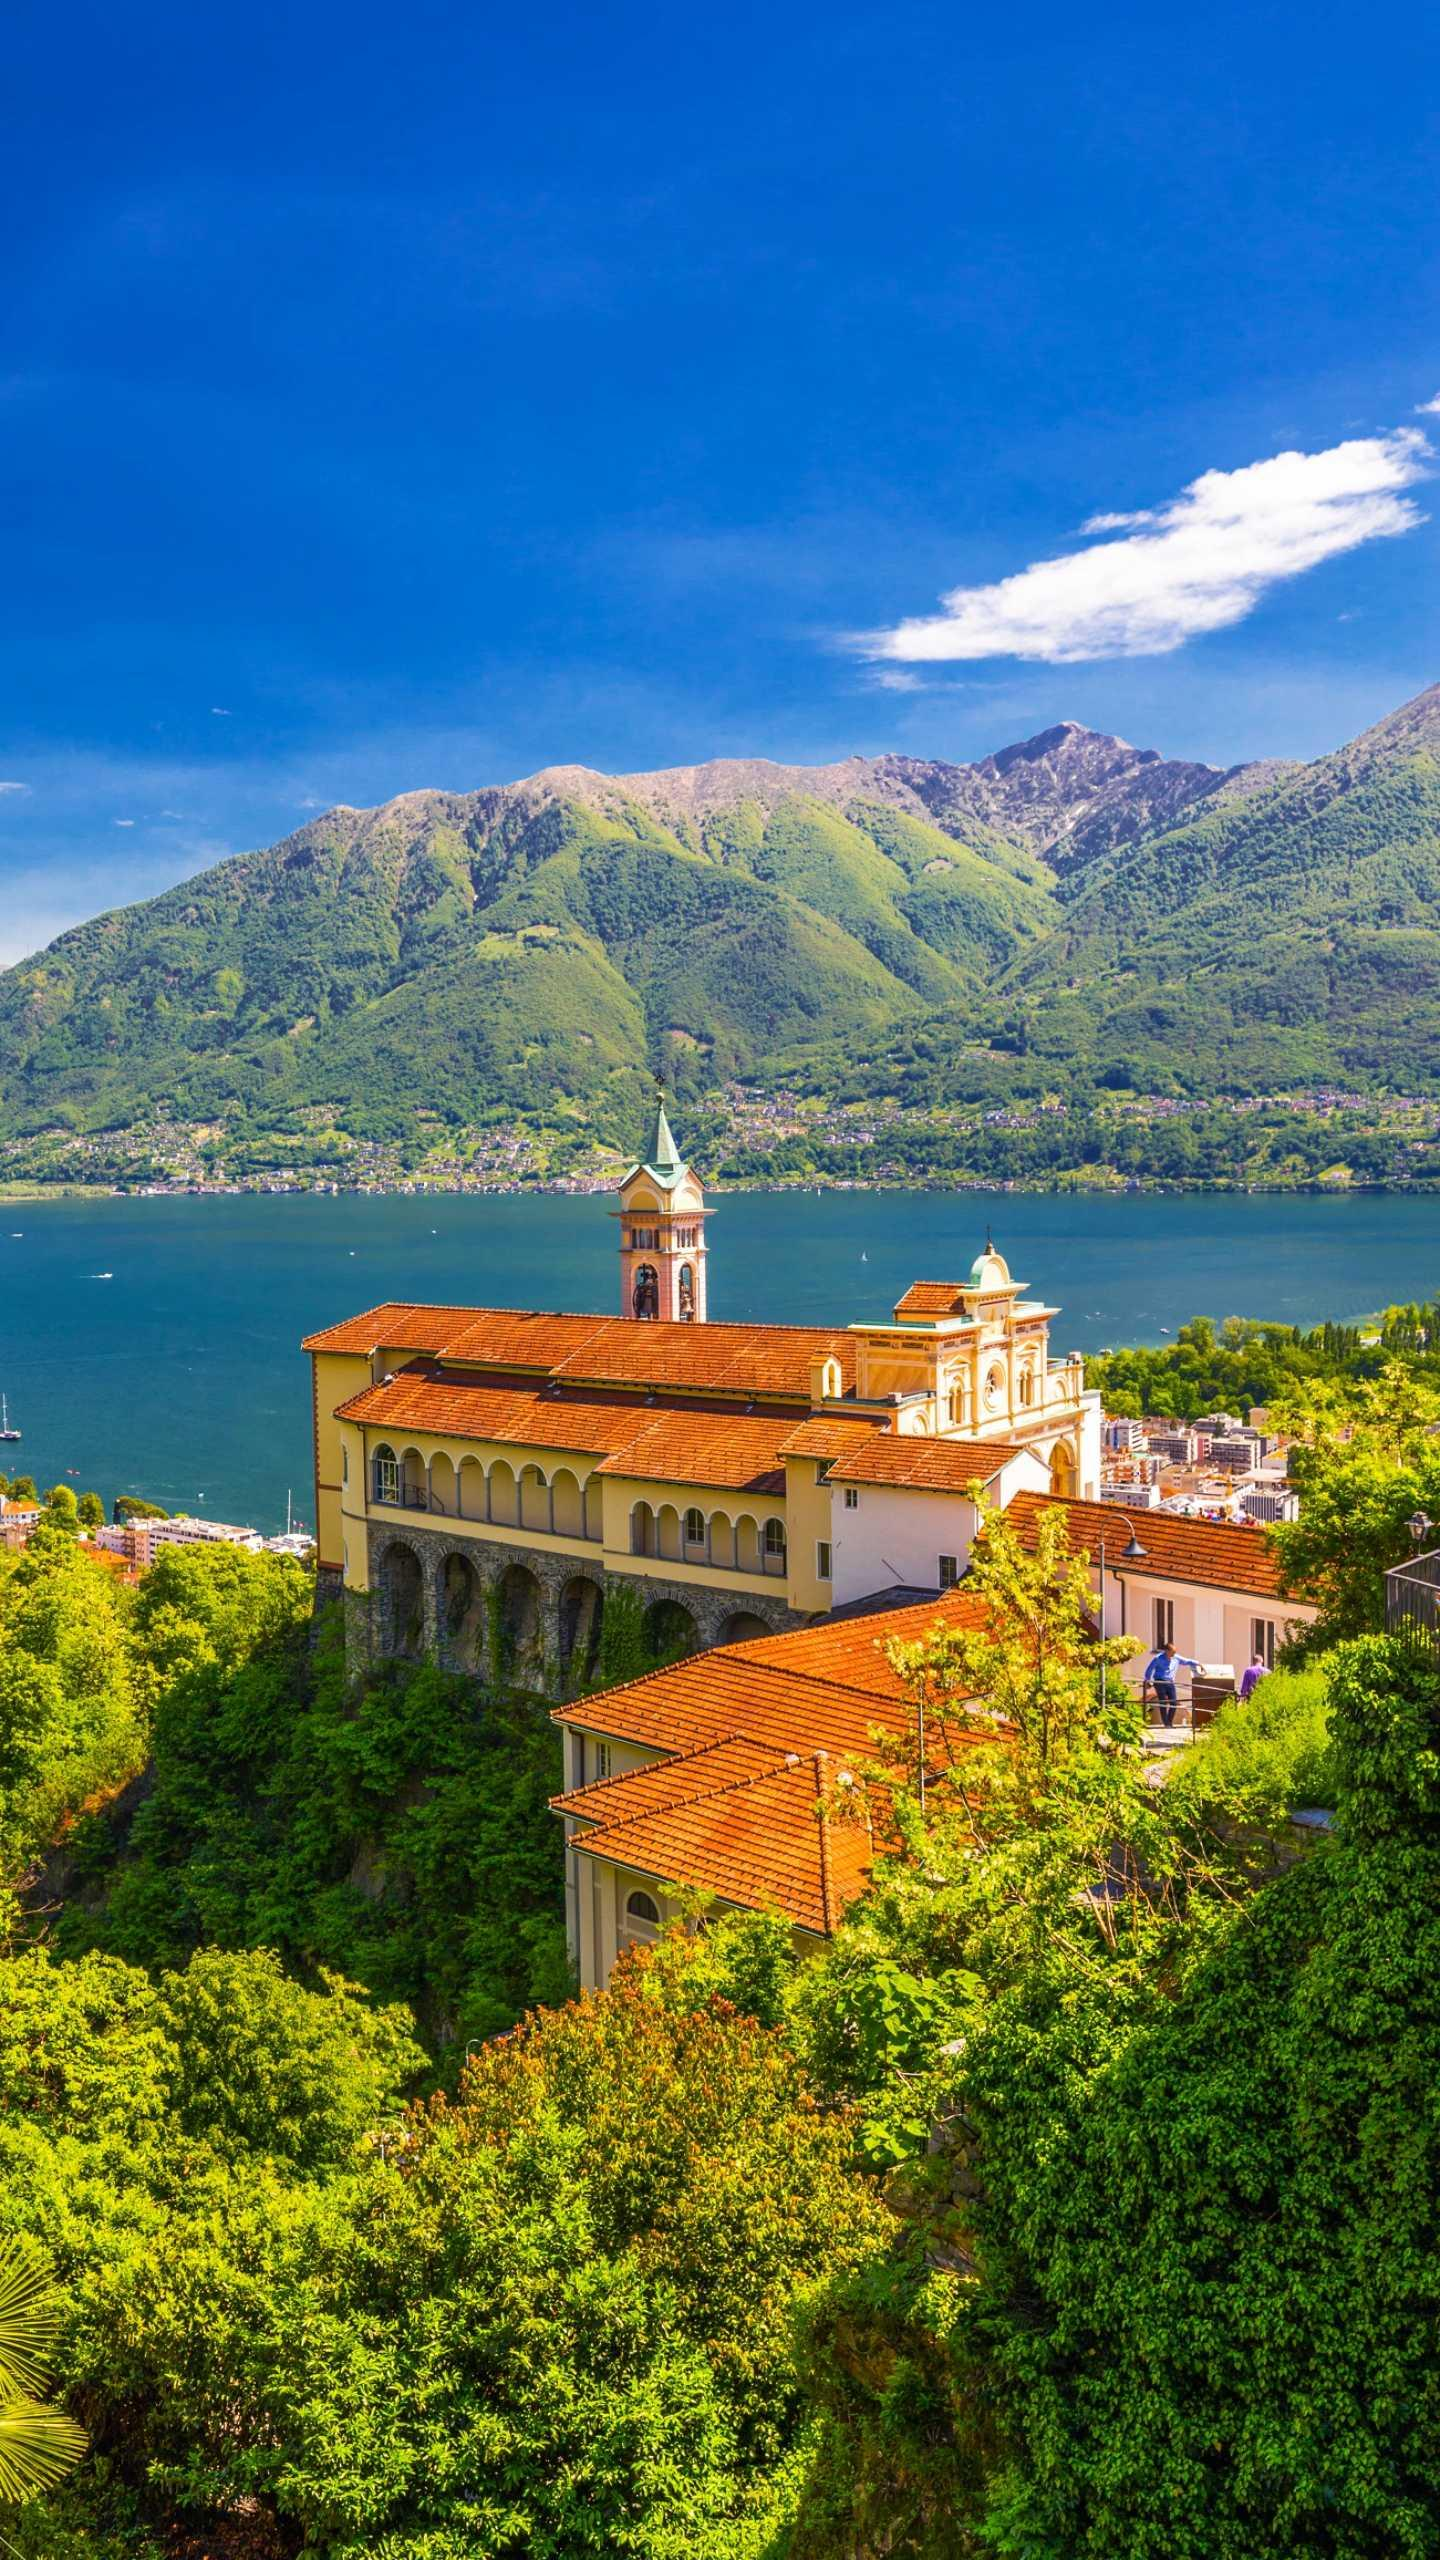 Switzerland - Locarno h. The beautiful lakes and mountains of Locarno and the ancient European architecture are naturally blended with the simplicity and tranquility under the sun.